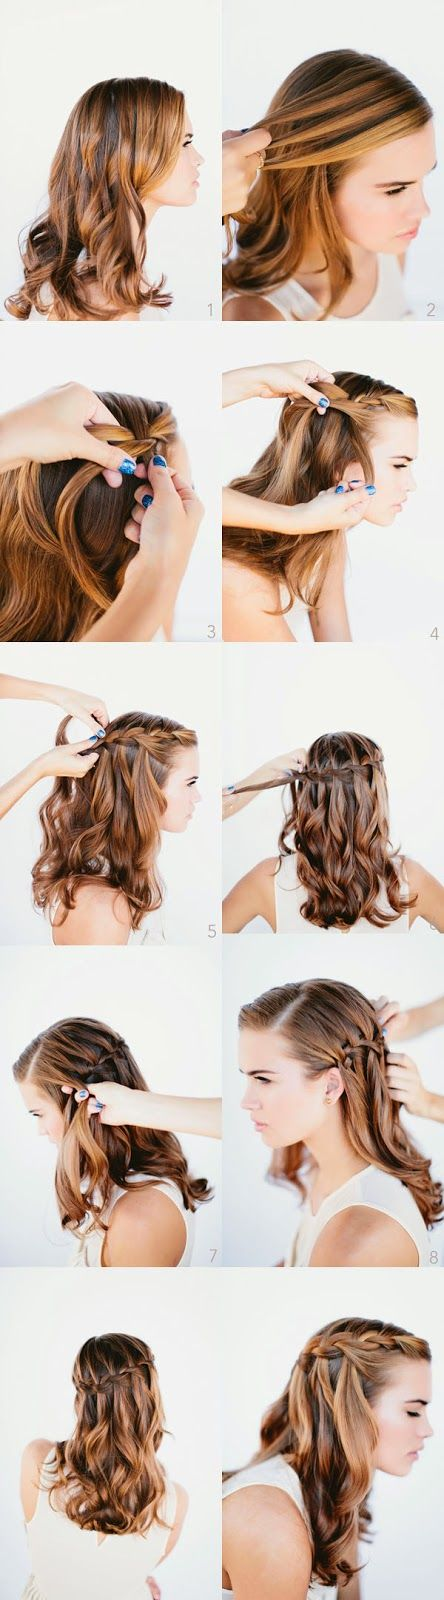 Braids+always+look+trendy+and+stylish,+I+prepare+for+you+a+lot+of+useful+hair+braid+ideas.+Take+a+look+and+change+your+hairstyle+today..jpg 444×1,600 pixels